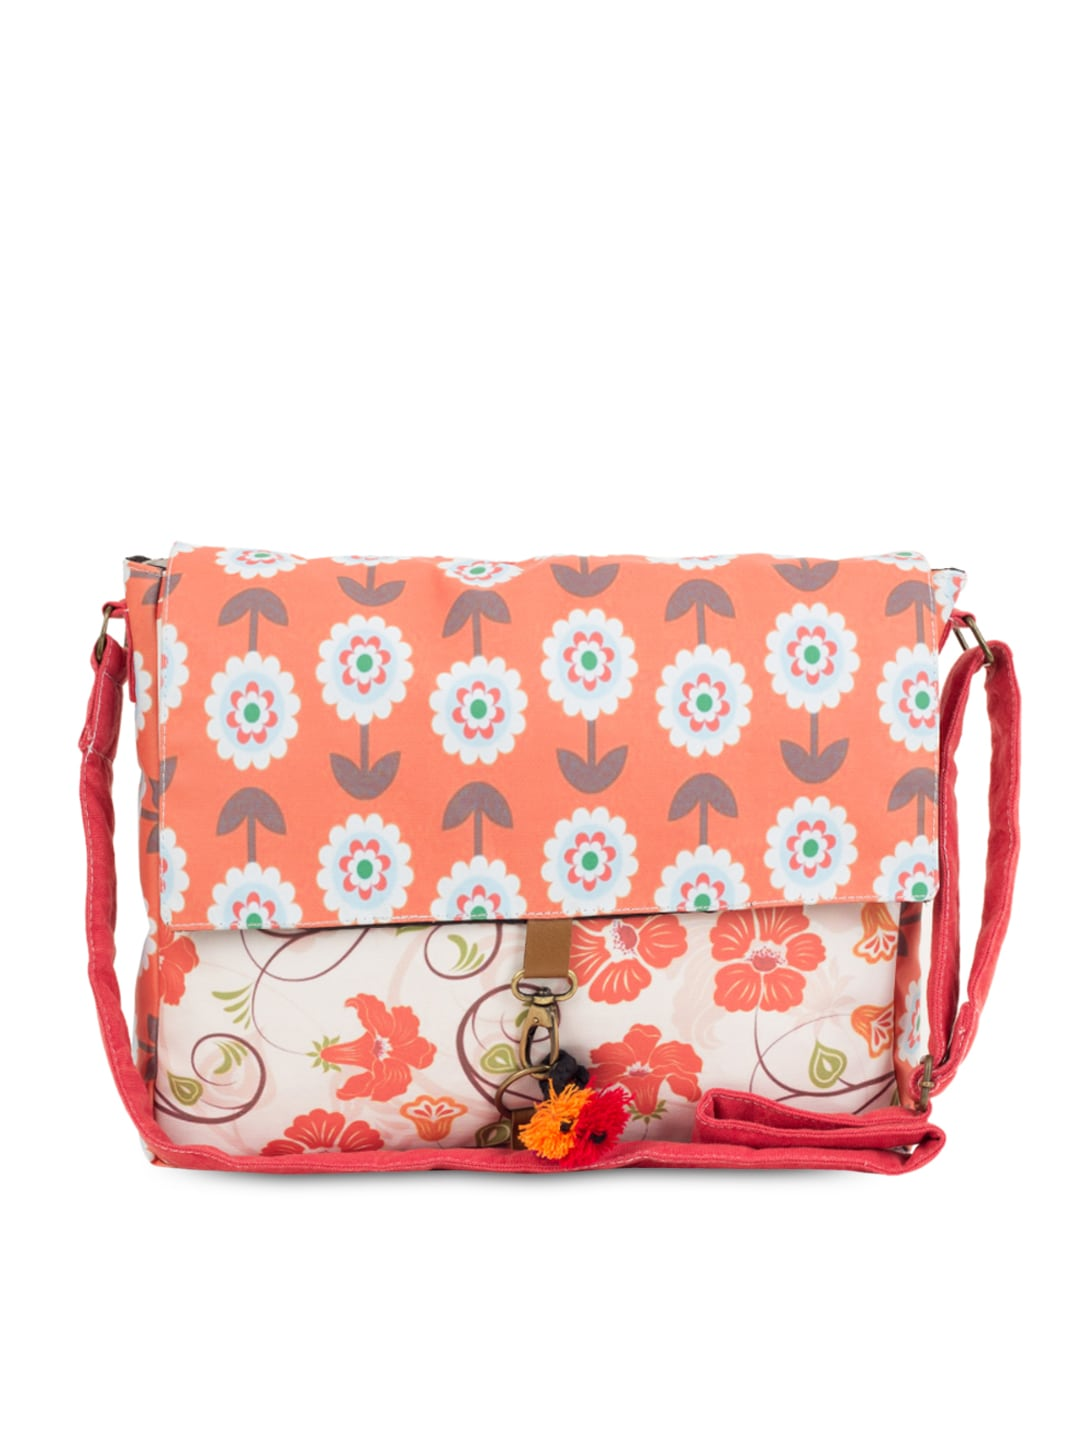 The House of Tara Unisex Multicoloured Printed Sling Bag